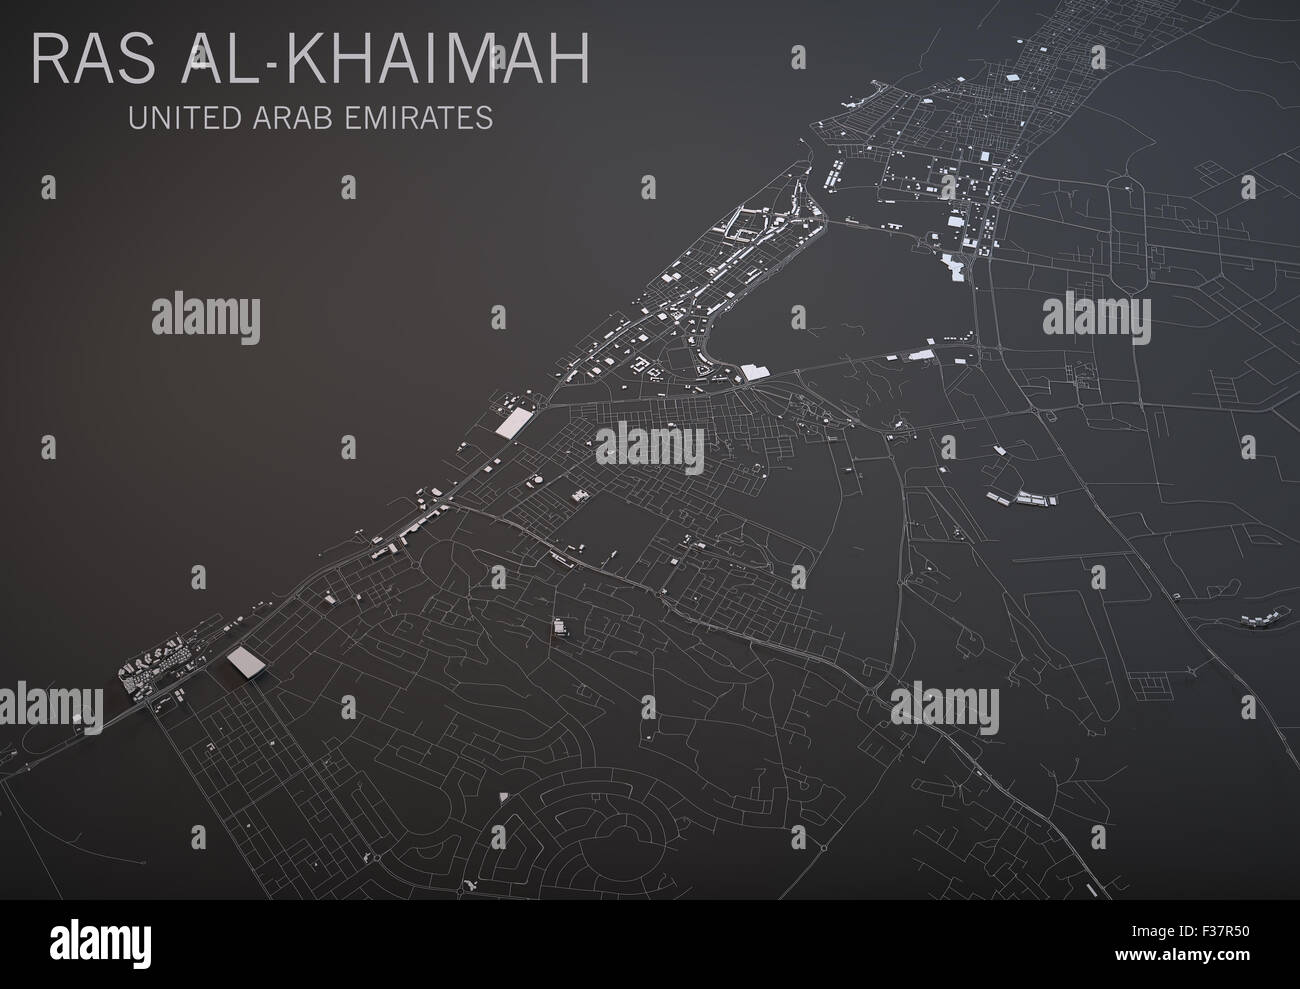 map of ras al khaimah in the uae satellite view map in 3d black and white